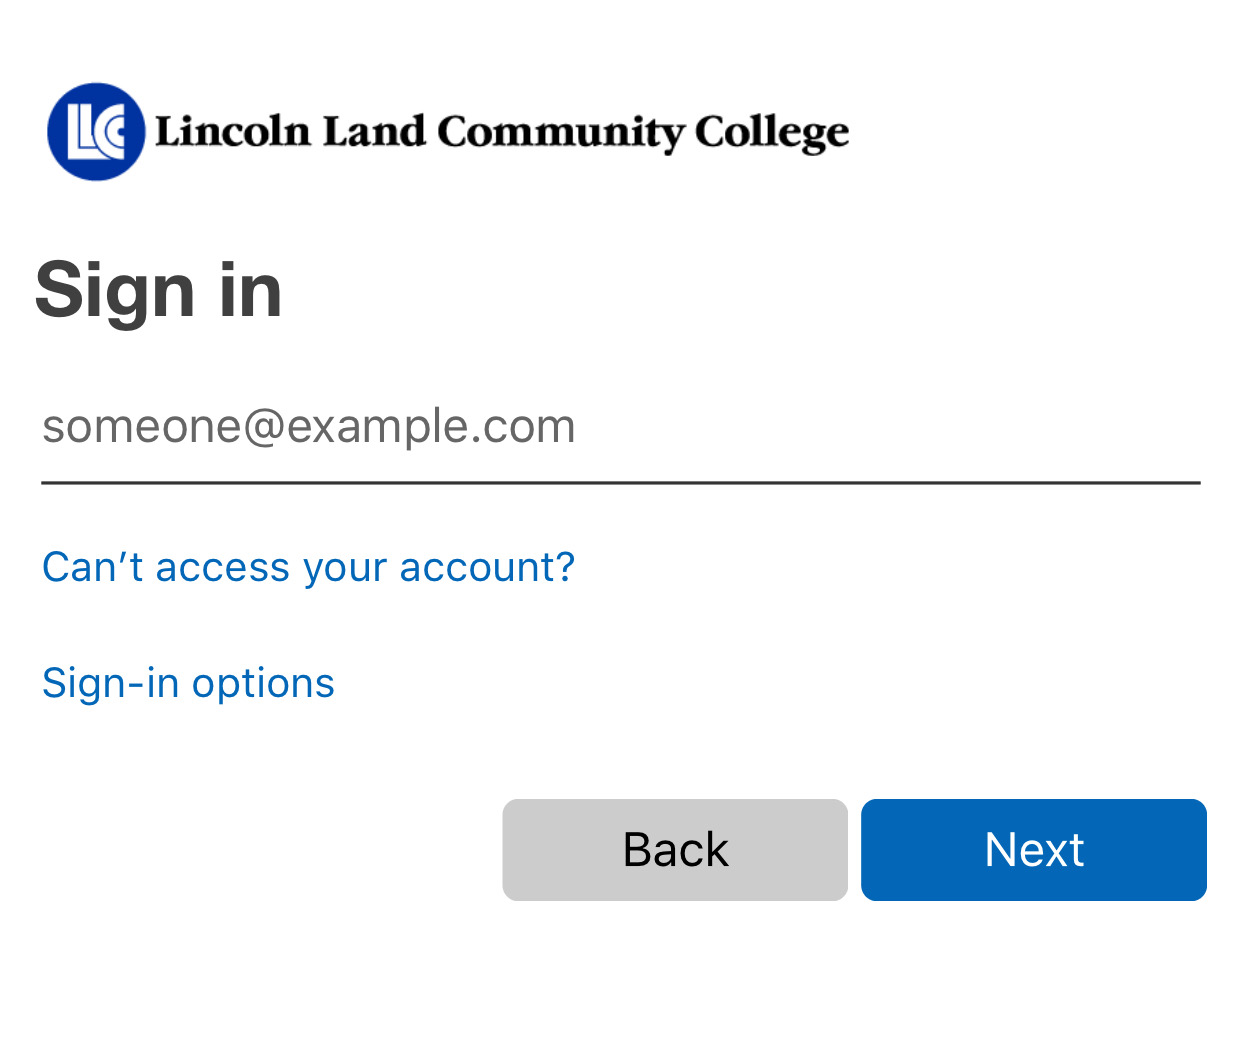 To authenticate to LLCC Library resources, first enter your LLCC email address and click next.